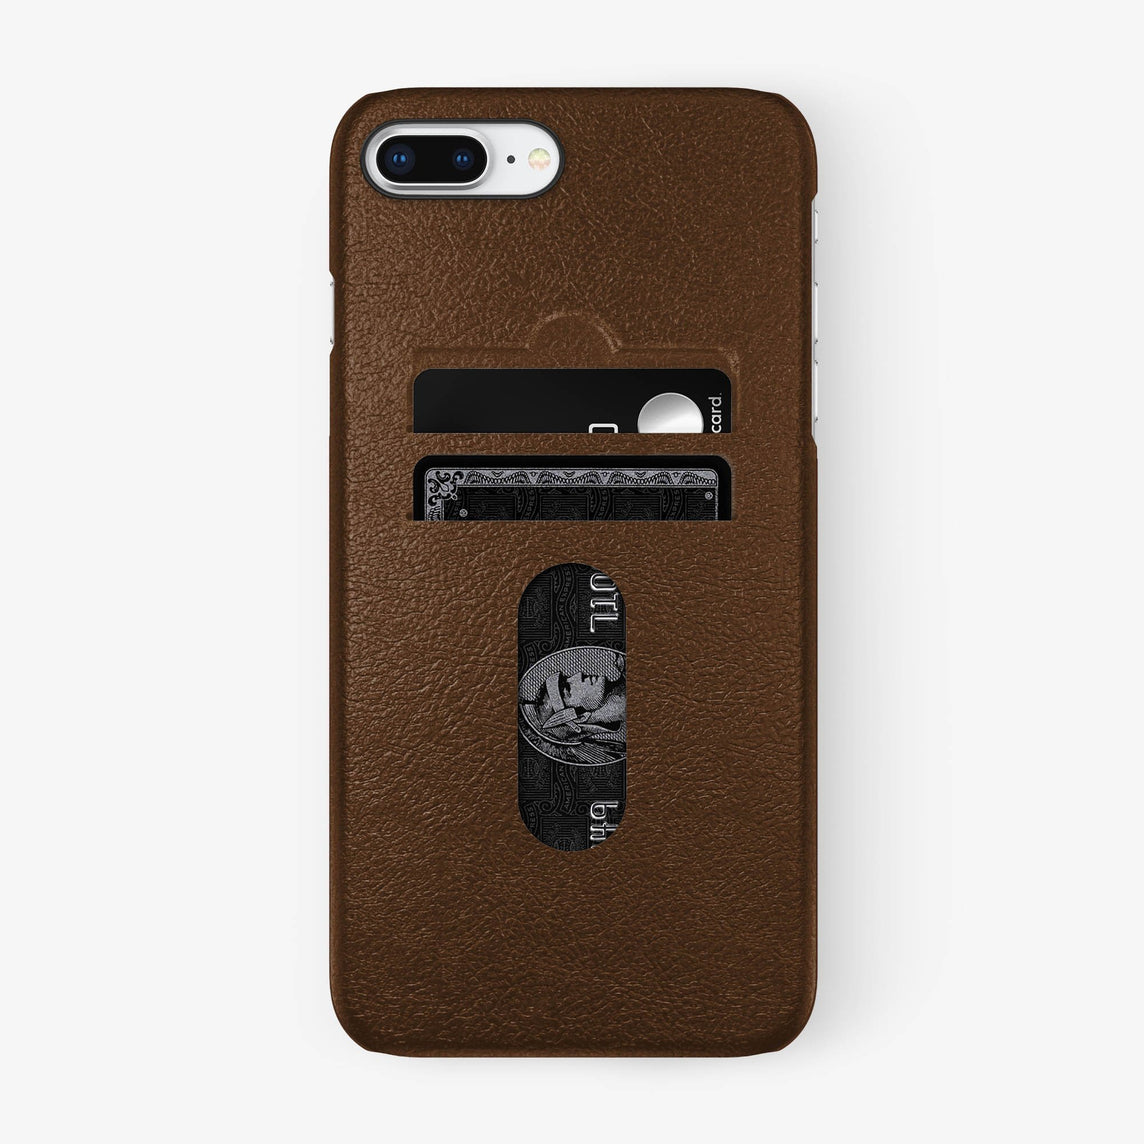 Brown Calfskin iPhone Card Holder Case for iPhone 7/8 Plus finishing black - Hadoro Luxury Cases